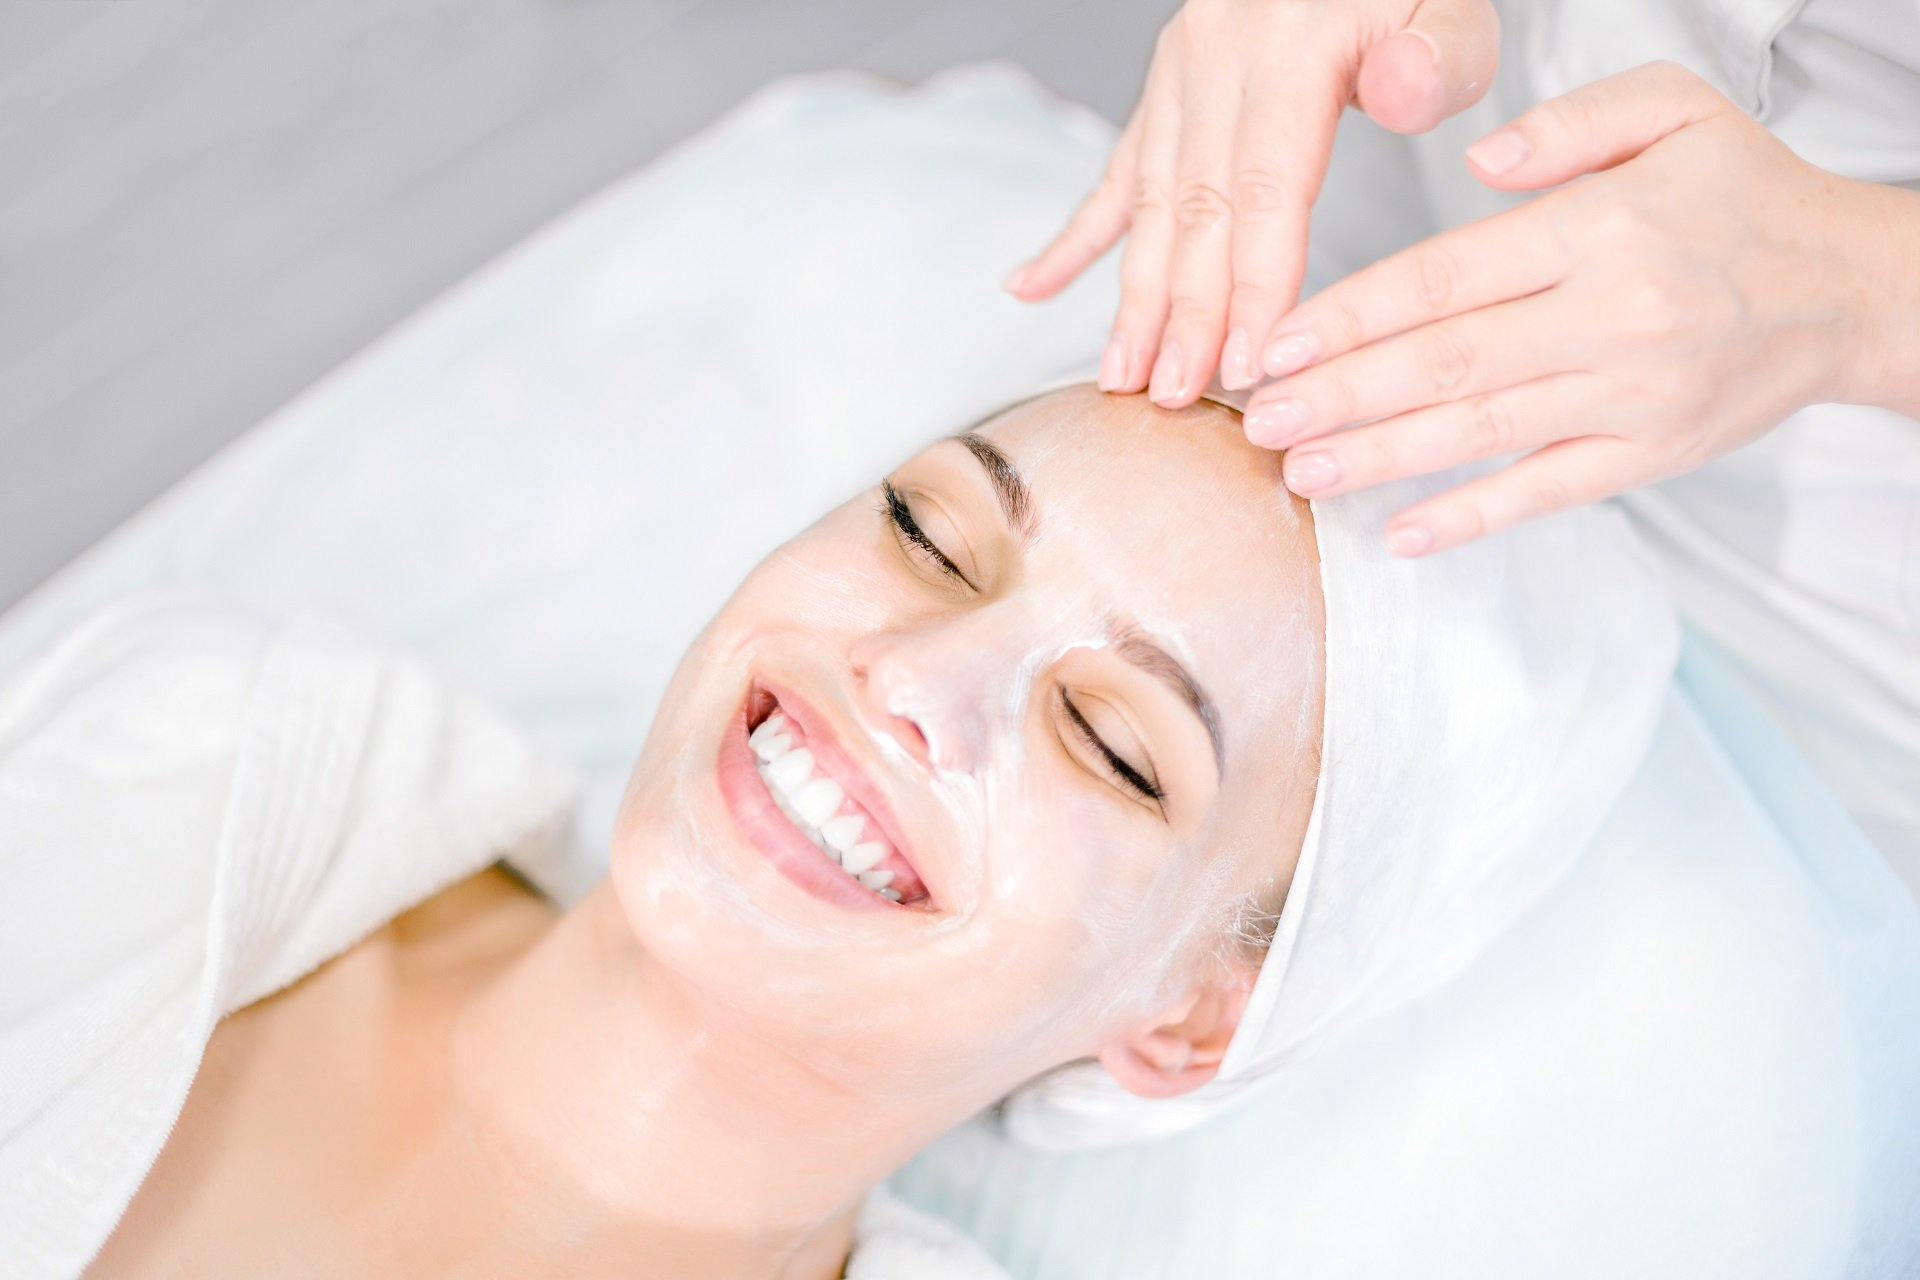 smiling-at-spa-online-facial-courses-The-Centre-Of-Wellness.